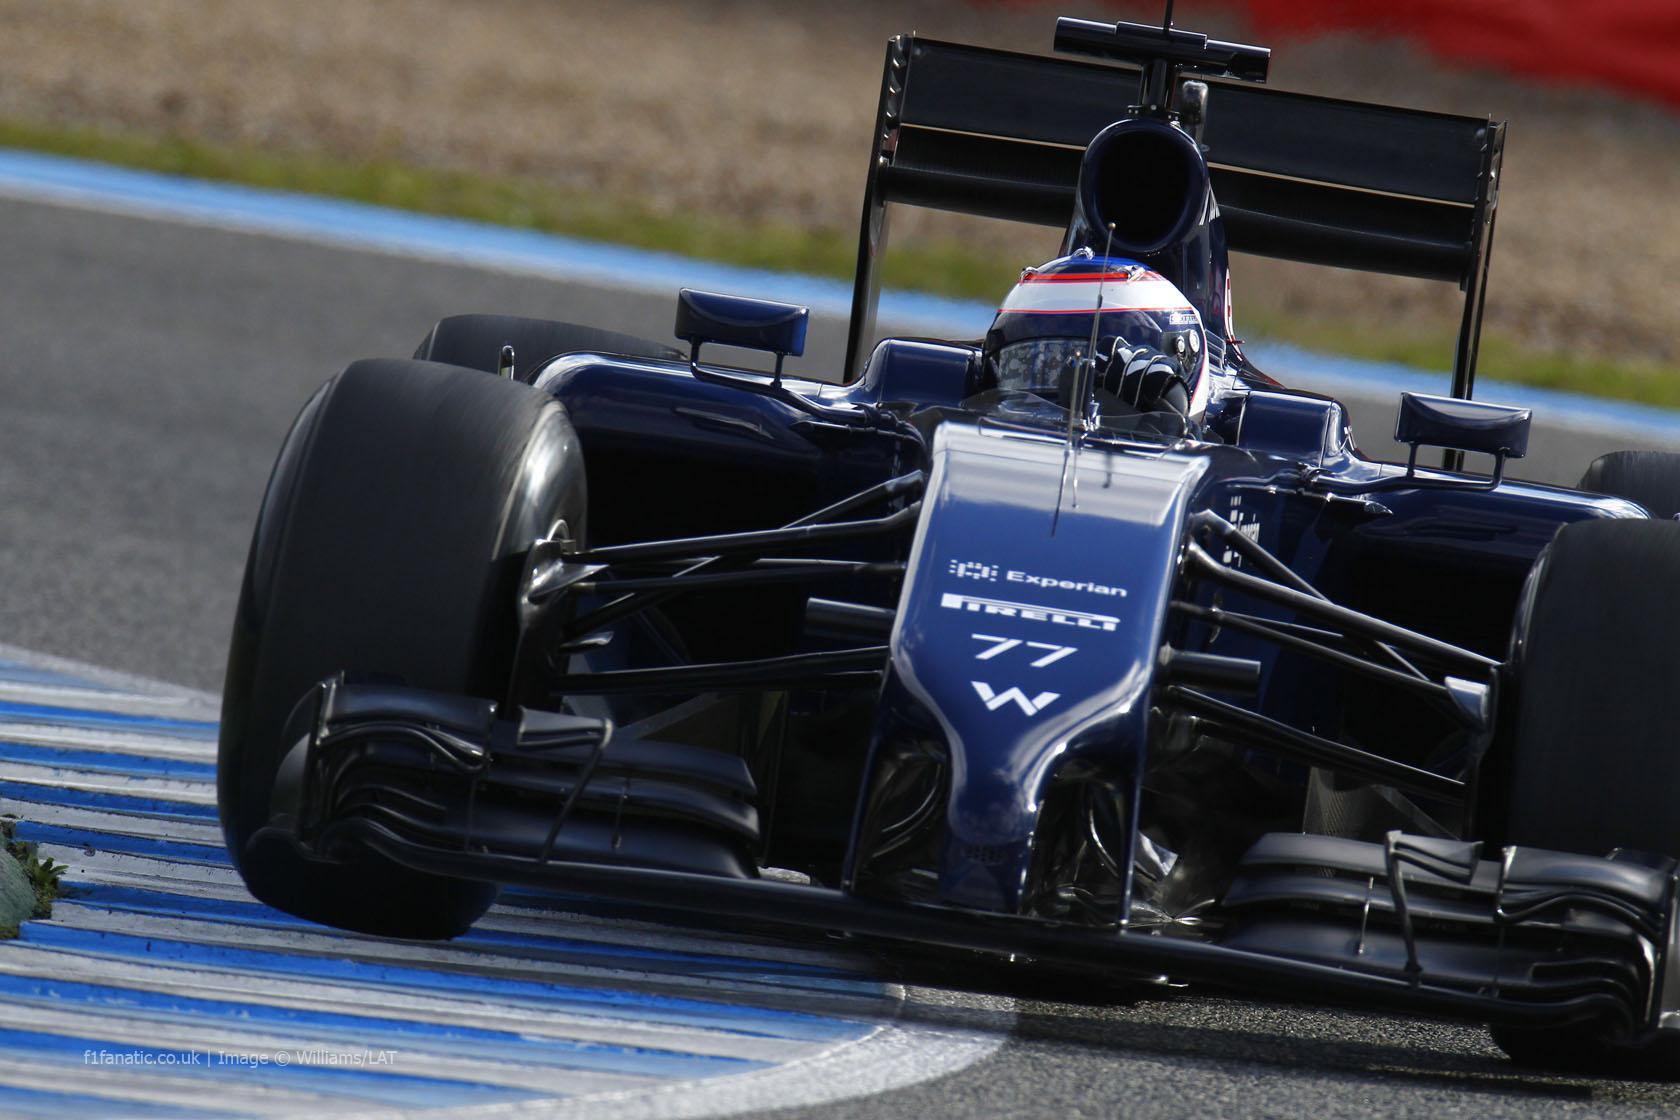 Williams F1 car - Season 2014, not so beautiful.